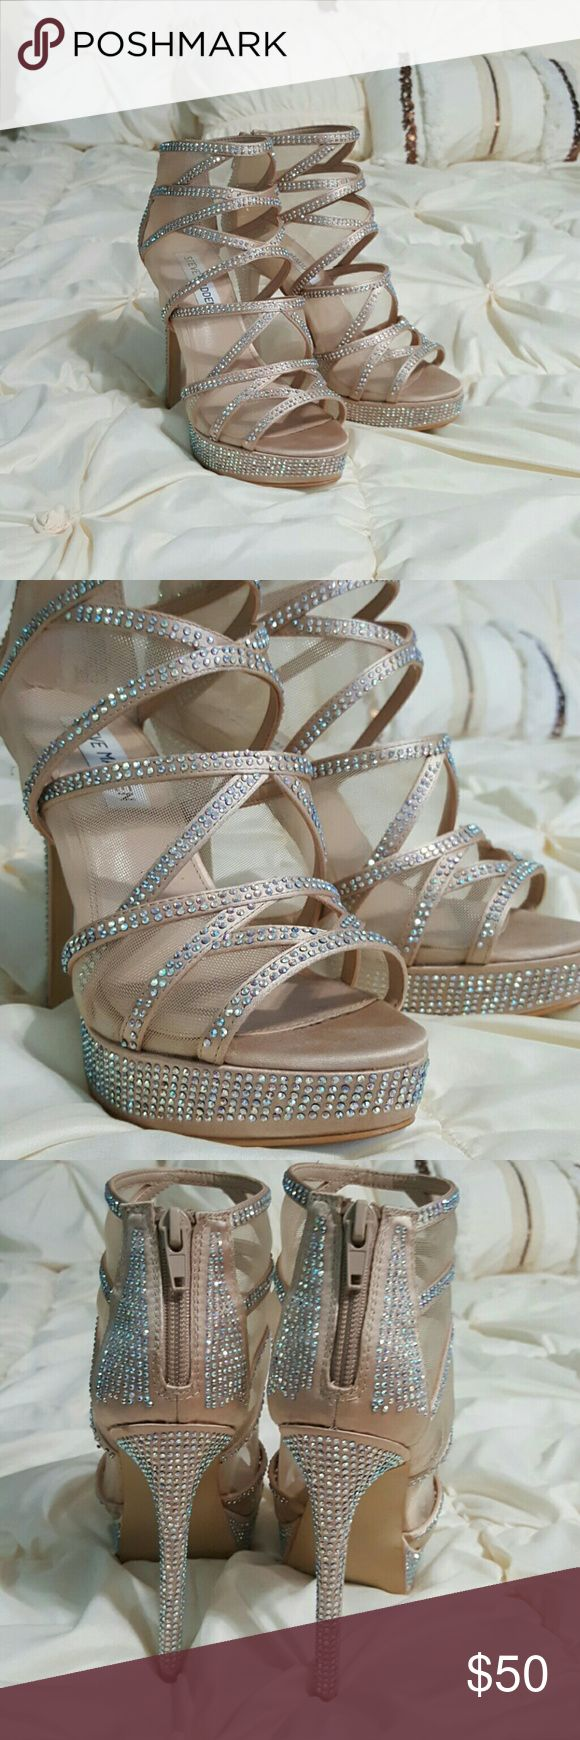 Steve Madden Strappy Platform Heels Steve Madden rhinestone heels. Mesh lining helps with comfort in holding your foot in like a bootie.  Blush colored, AB rhinestones. Looks so good on your foot! Worn once. Steve Madden Shoes Heels